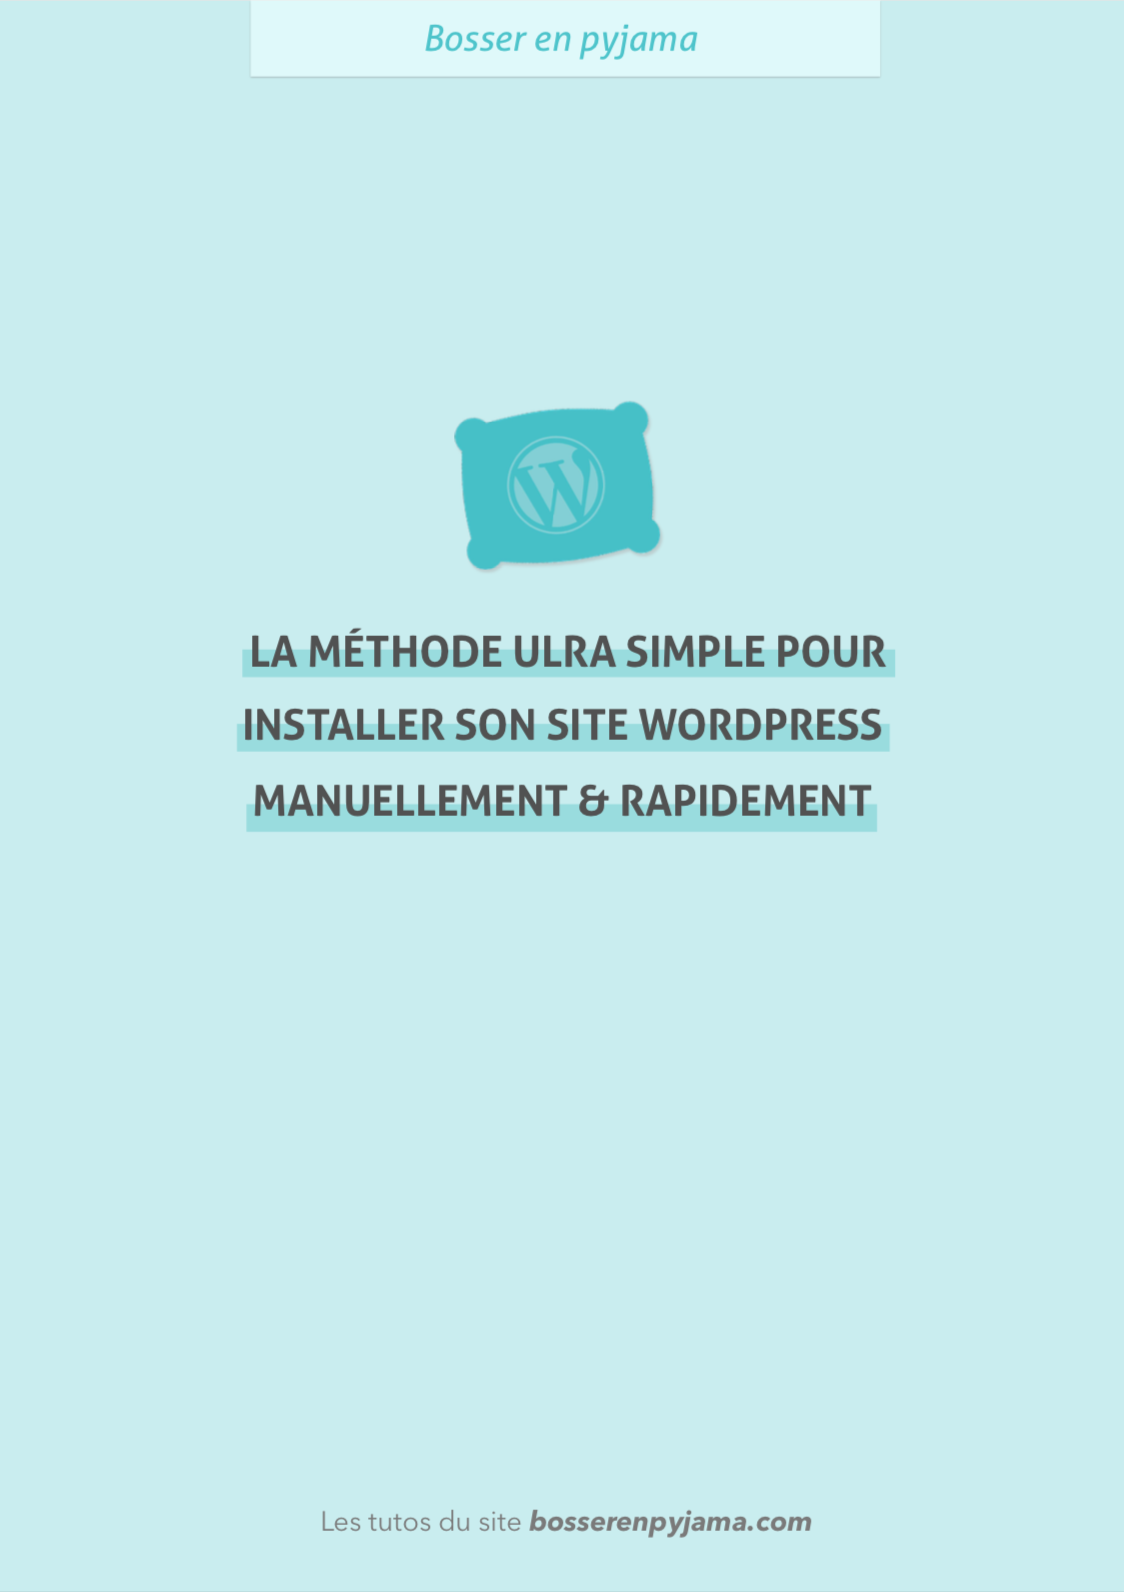 Méthode ultra simple installation WordPress